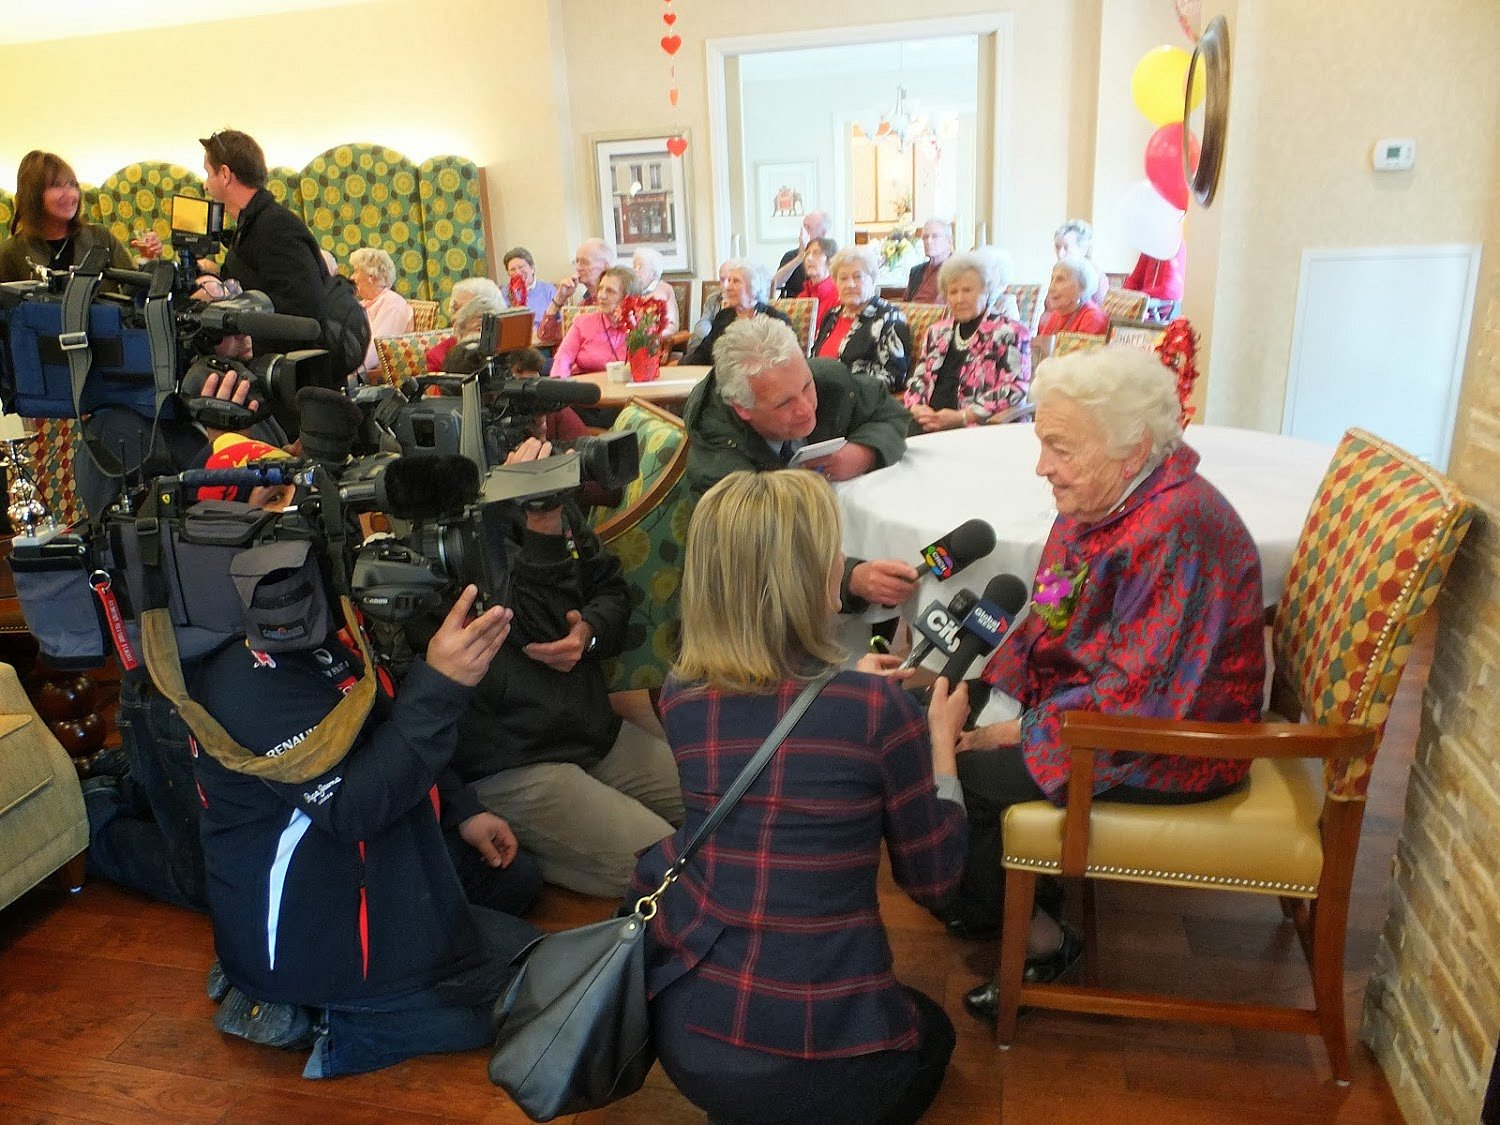 Mayor Hazel McCallion being interviewed by CHCH, City TV, Global News at Walden Circle, Photo by I Lee, Feb. 14, 2014